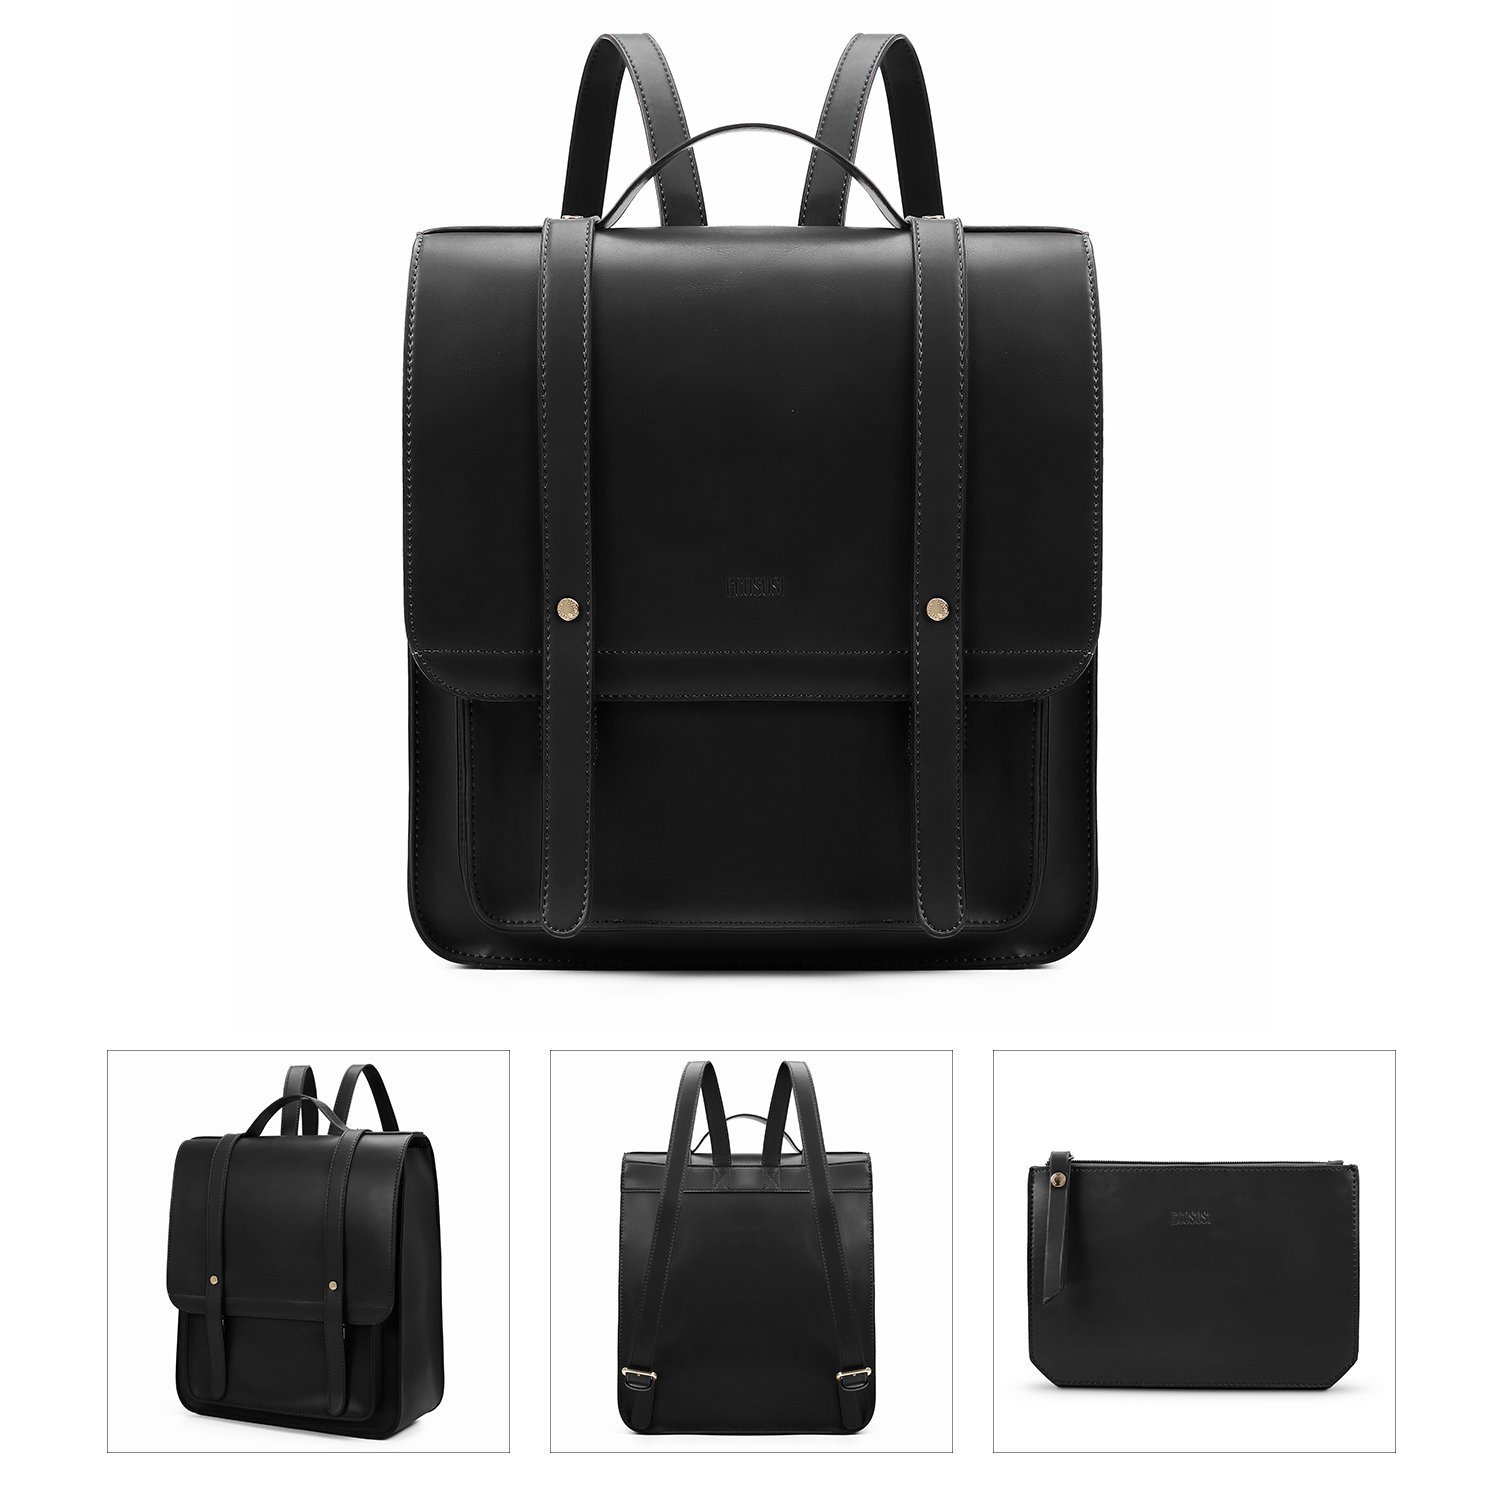 ECOSUSI Women Briefcase Laptop Backpack PU Leather Satchel Messenger Bag Fits up to 14 Inch Laptops with Small Purse, Black by ECOSUSI (Image #7)